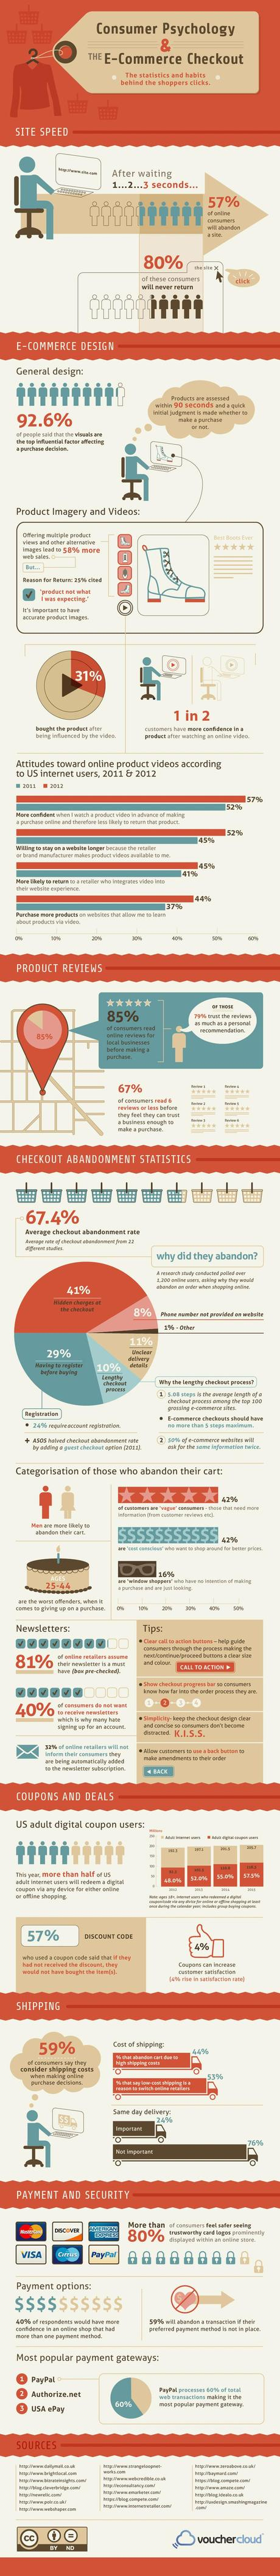 Consumer Psychology and Ecommerce Checkout